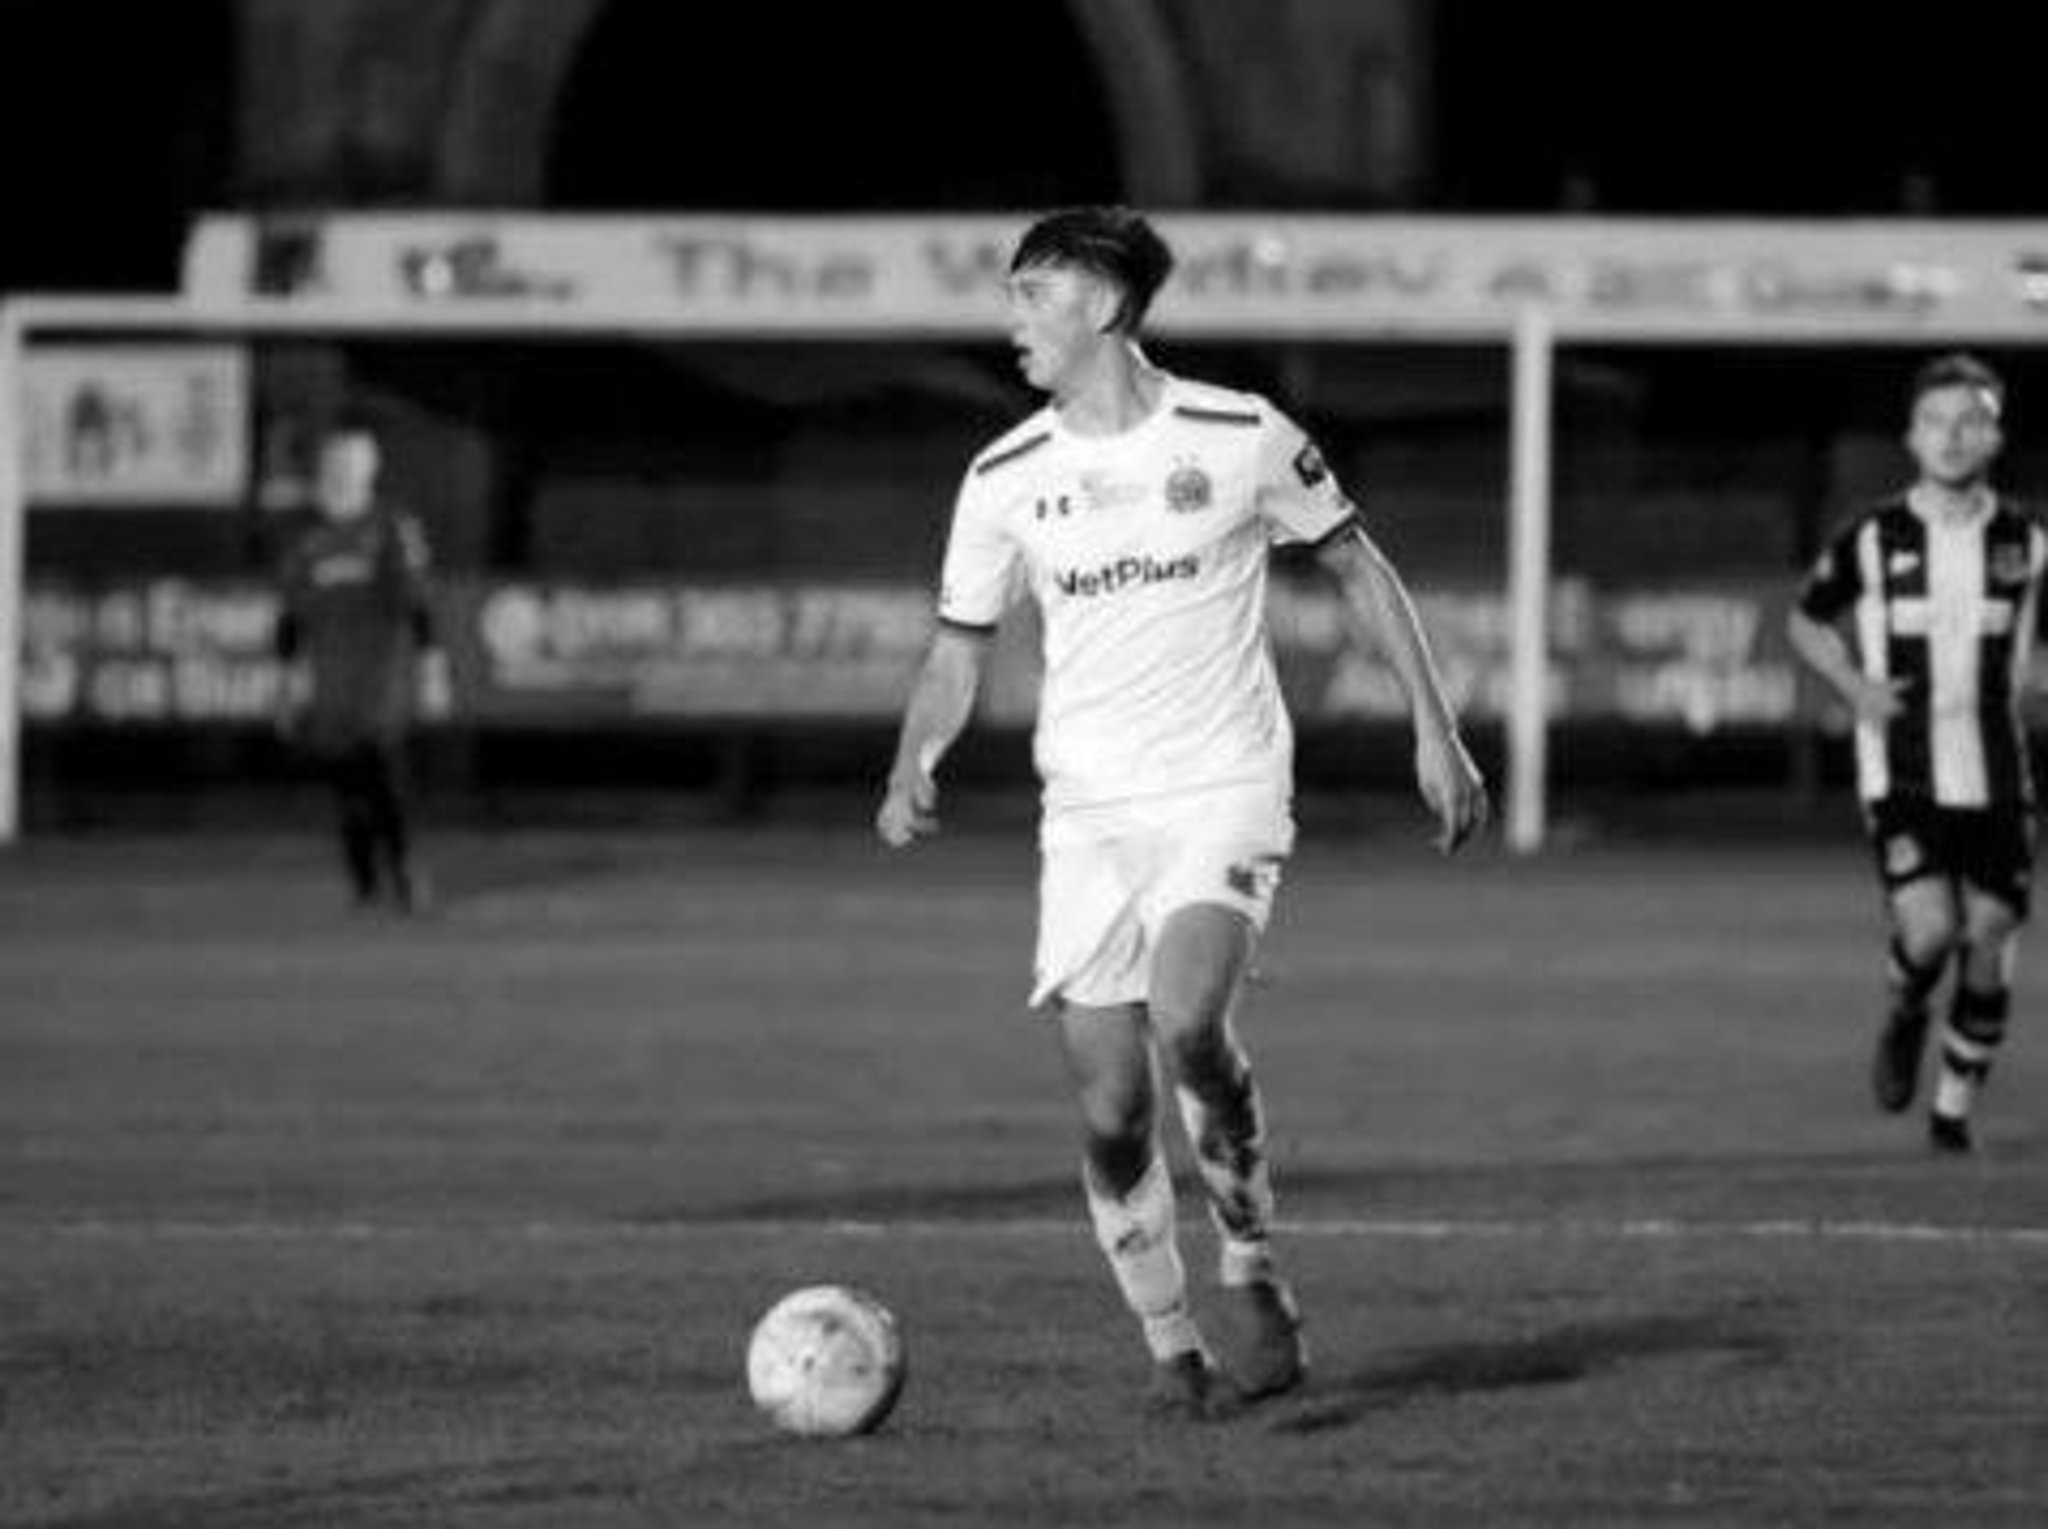 Afc Fylde Pay Tribute To Gifted 17 Year Old Footballer Who Died After Being Electrocuted At The Weekend Blackpool Gazette